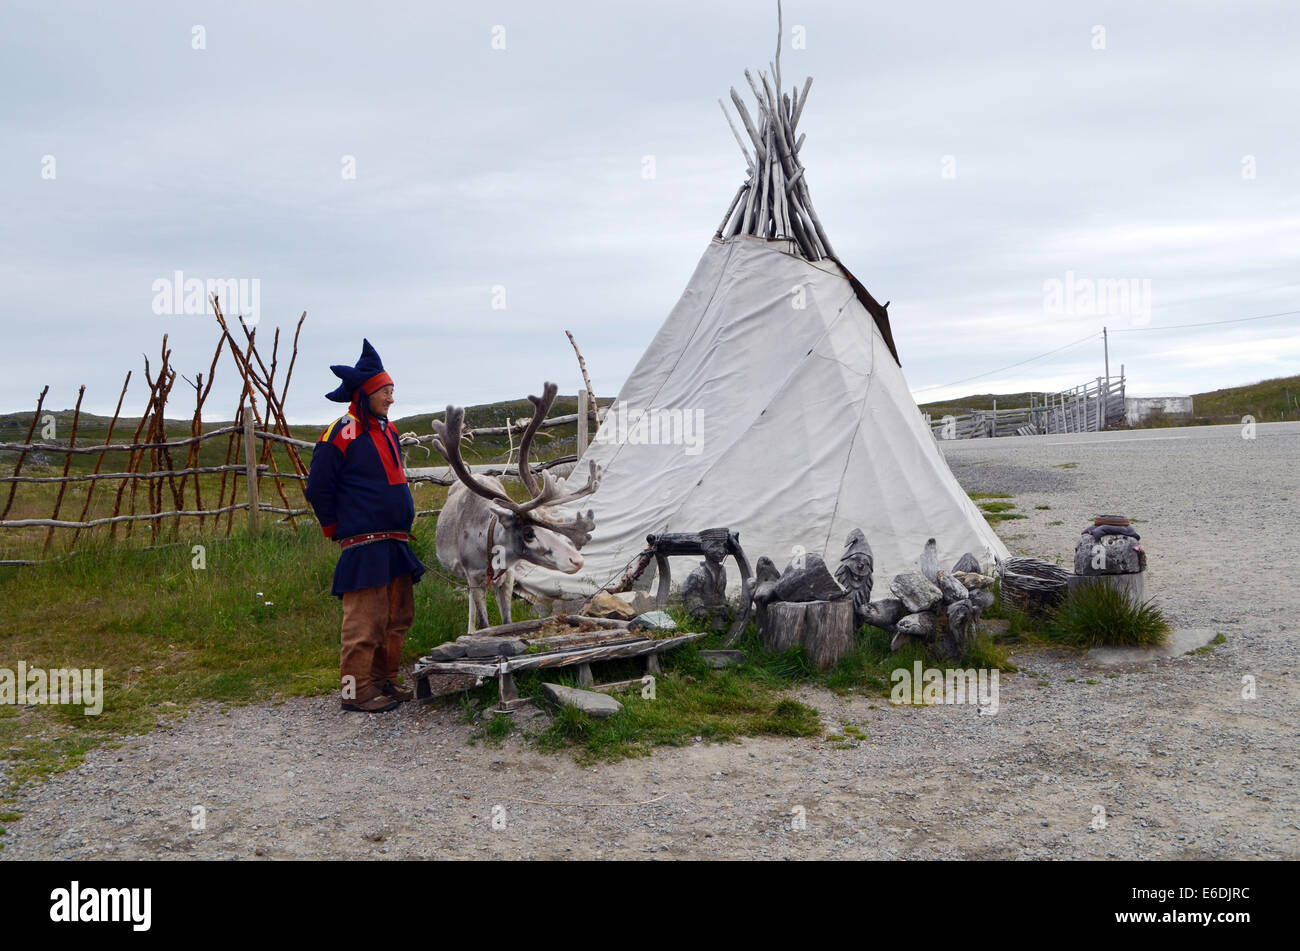 Honnigsvag, The Sami people, live like nomads with their deer all year round. The Sami people live with their deer. - Stock Image